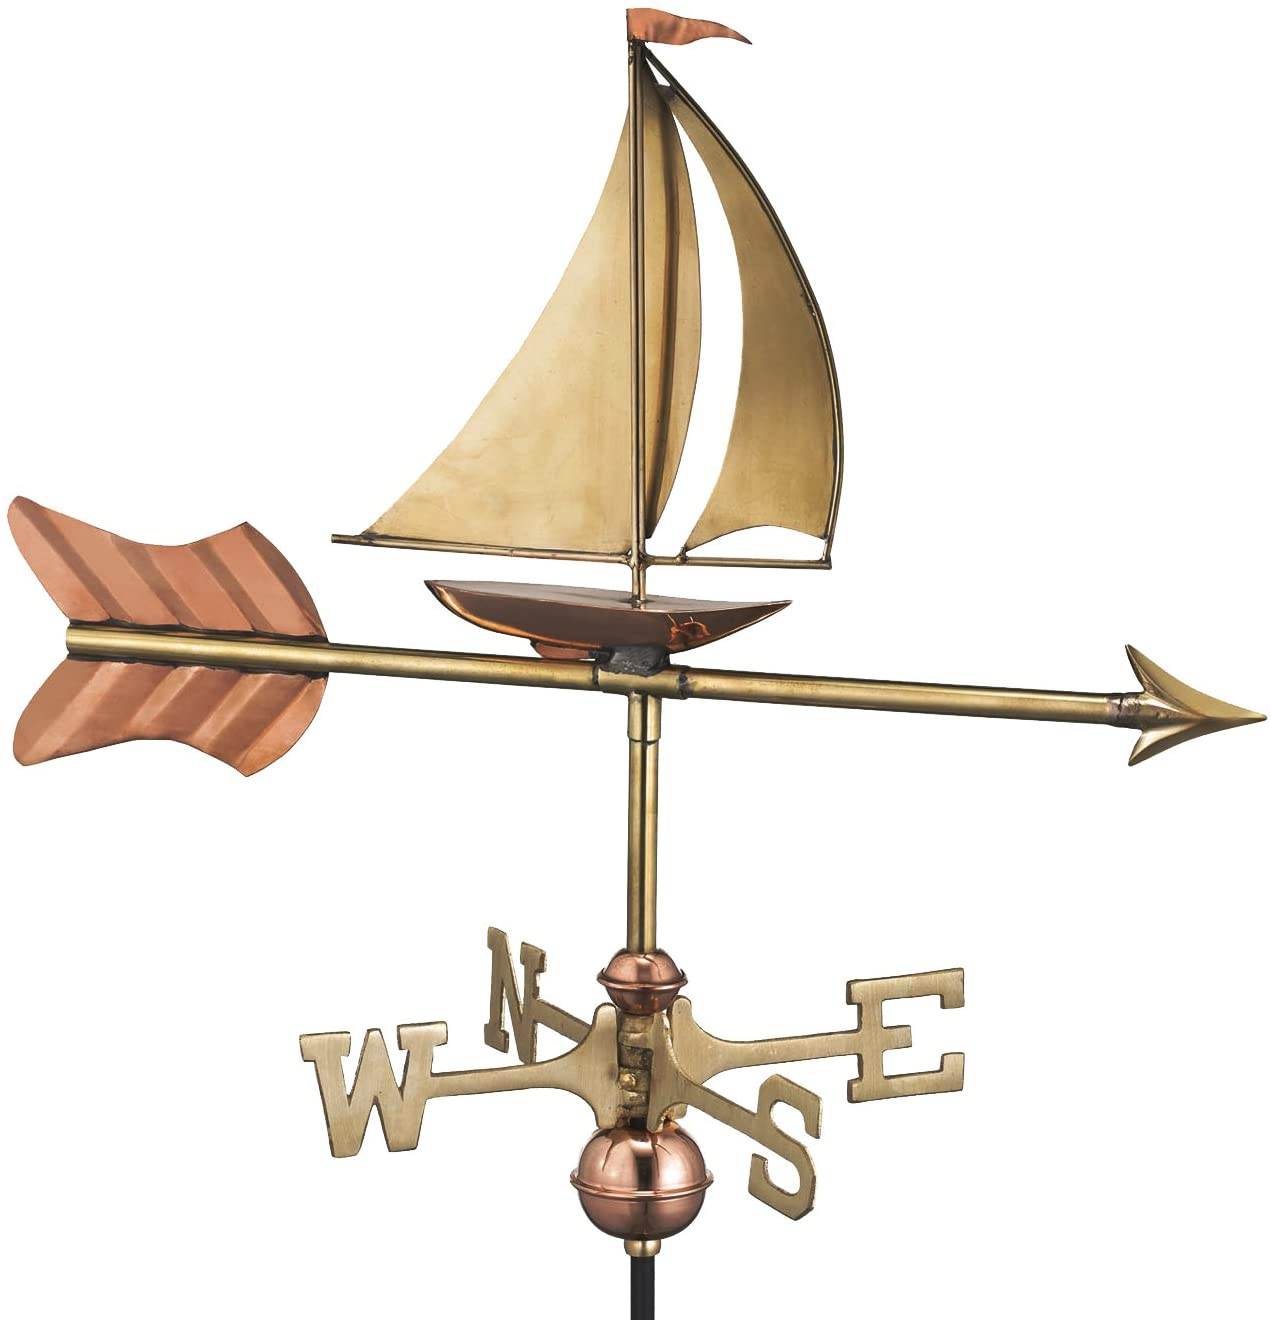 Good Directions 8803PR Sailboat Cottage Weathervane, Polished Copper with Roof Mount,Pure Copper